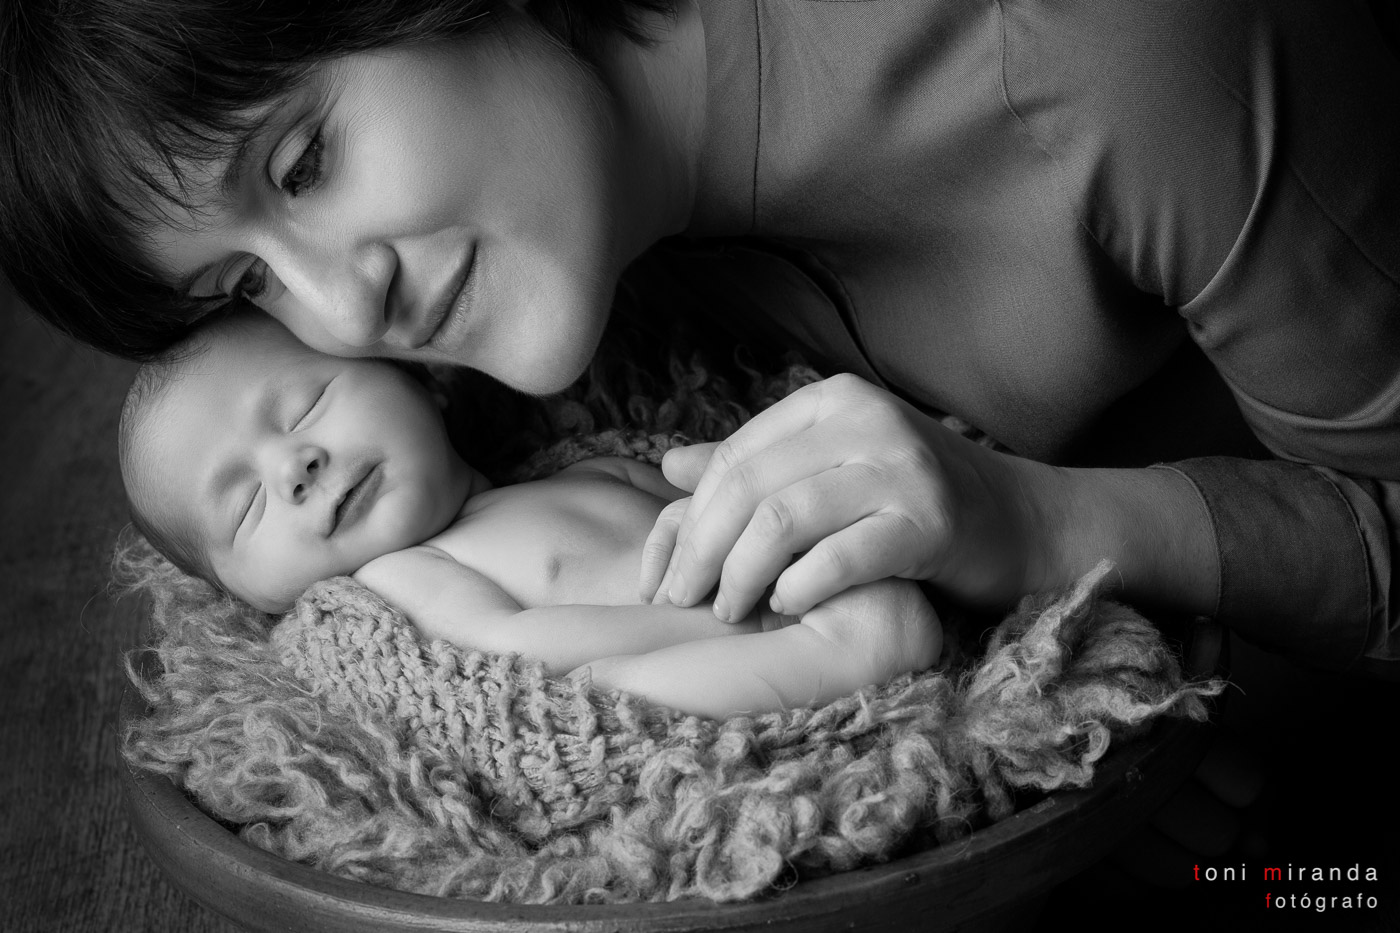 Mother with her newborn baby girl in black and white photoshoot